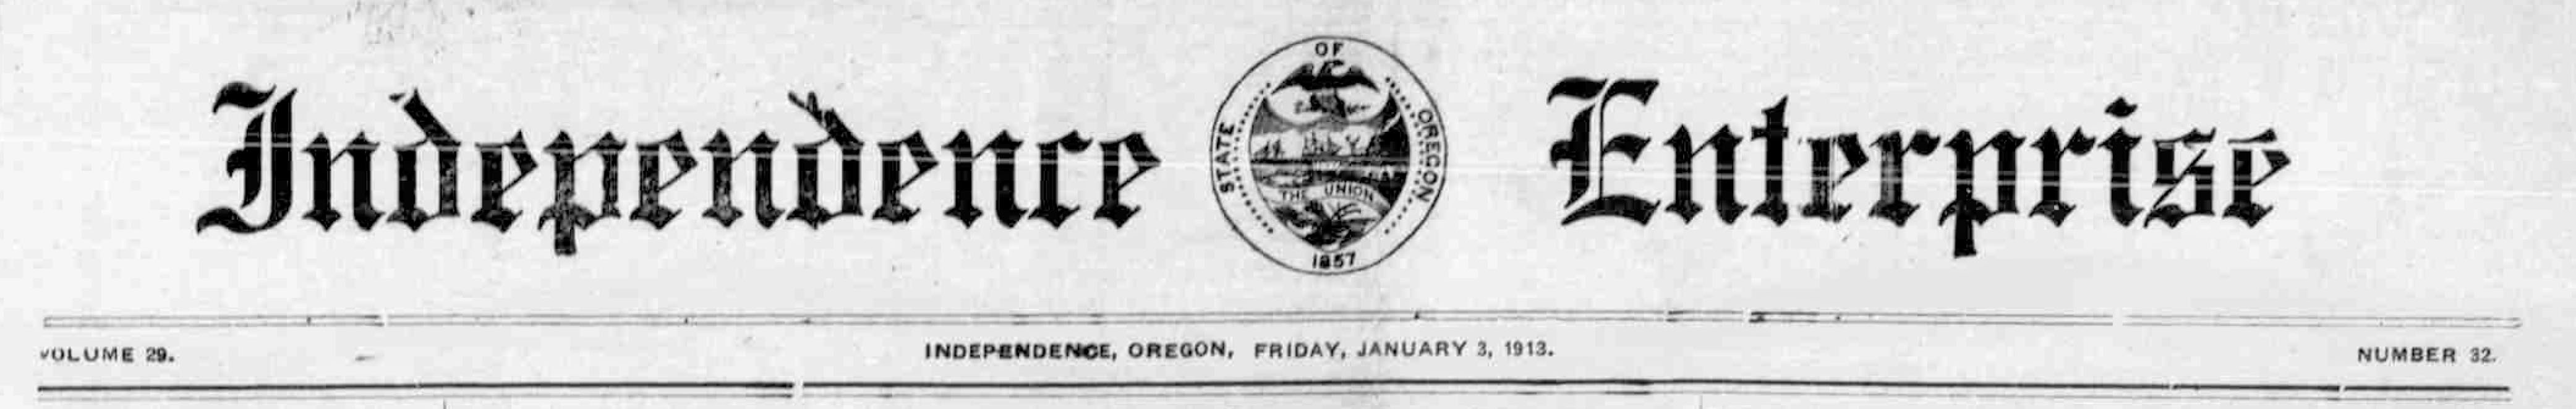 Independence enterprise. (Independence, Or.) January 3, 1913. Image 1. http://oregonnews.uoregon.edu/lccn/sn96088094/1913-01-03/ed-1/seq-1/